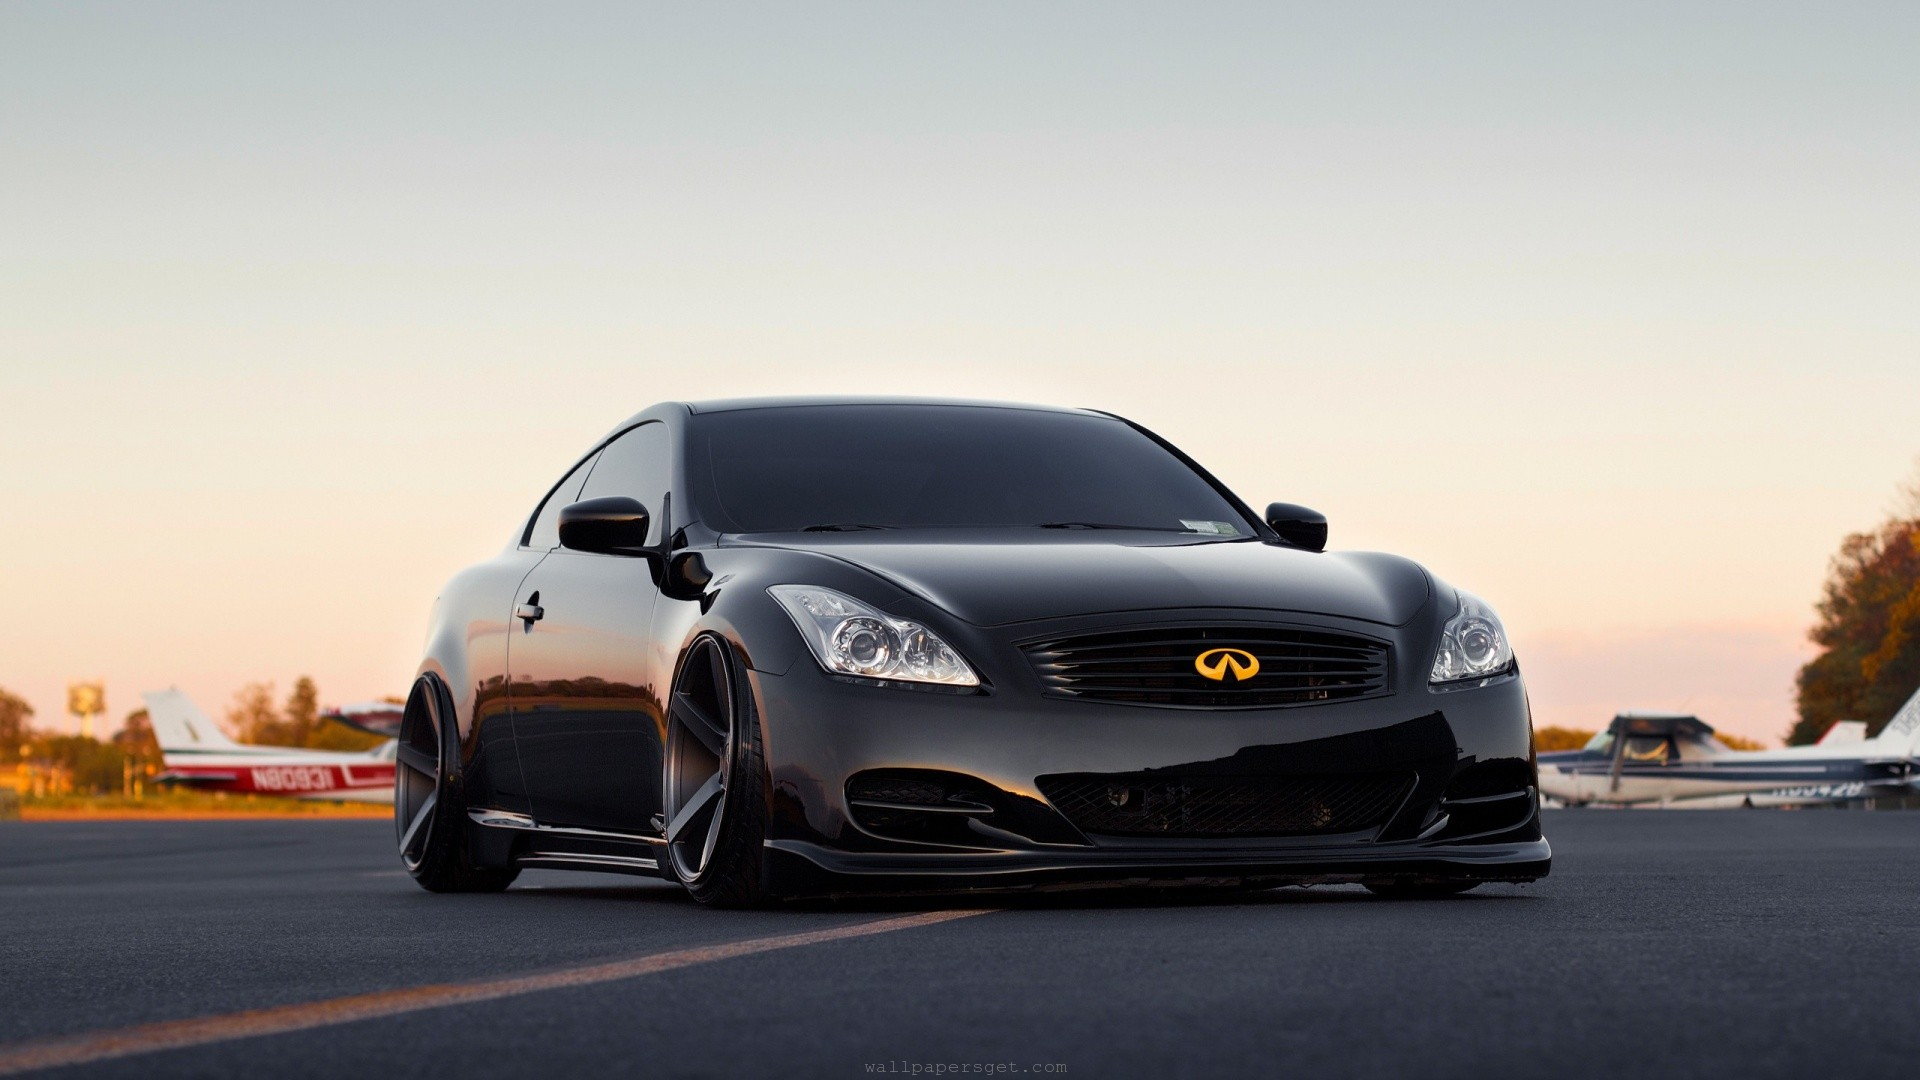 infiniti g37, vossen, wheels, HD Wallpaper